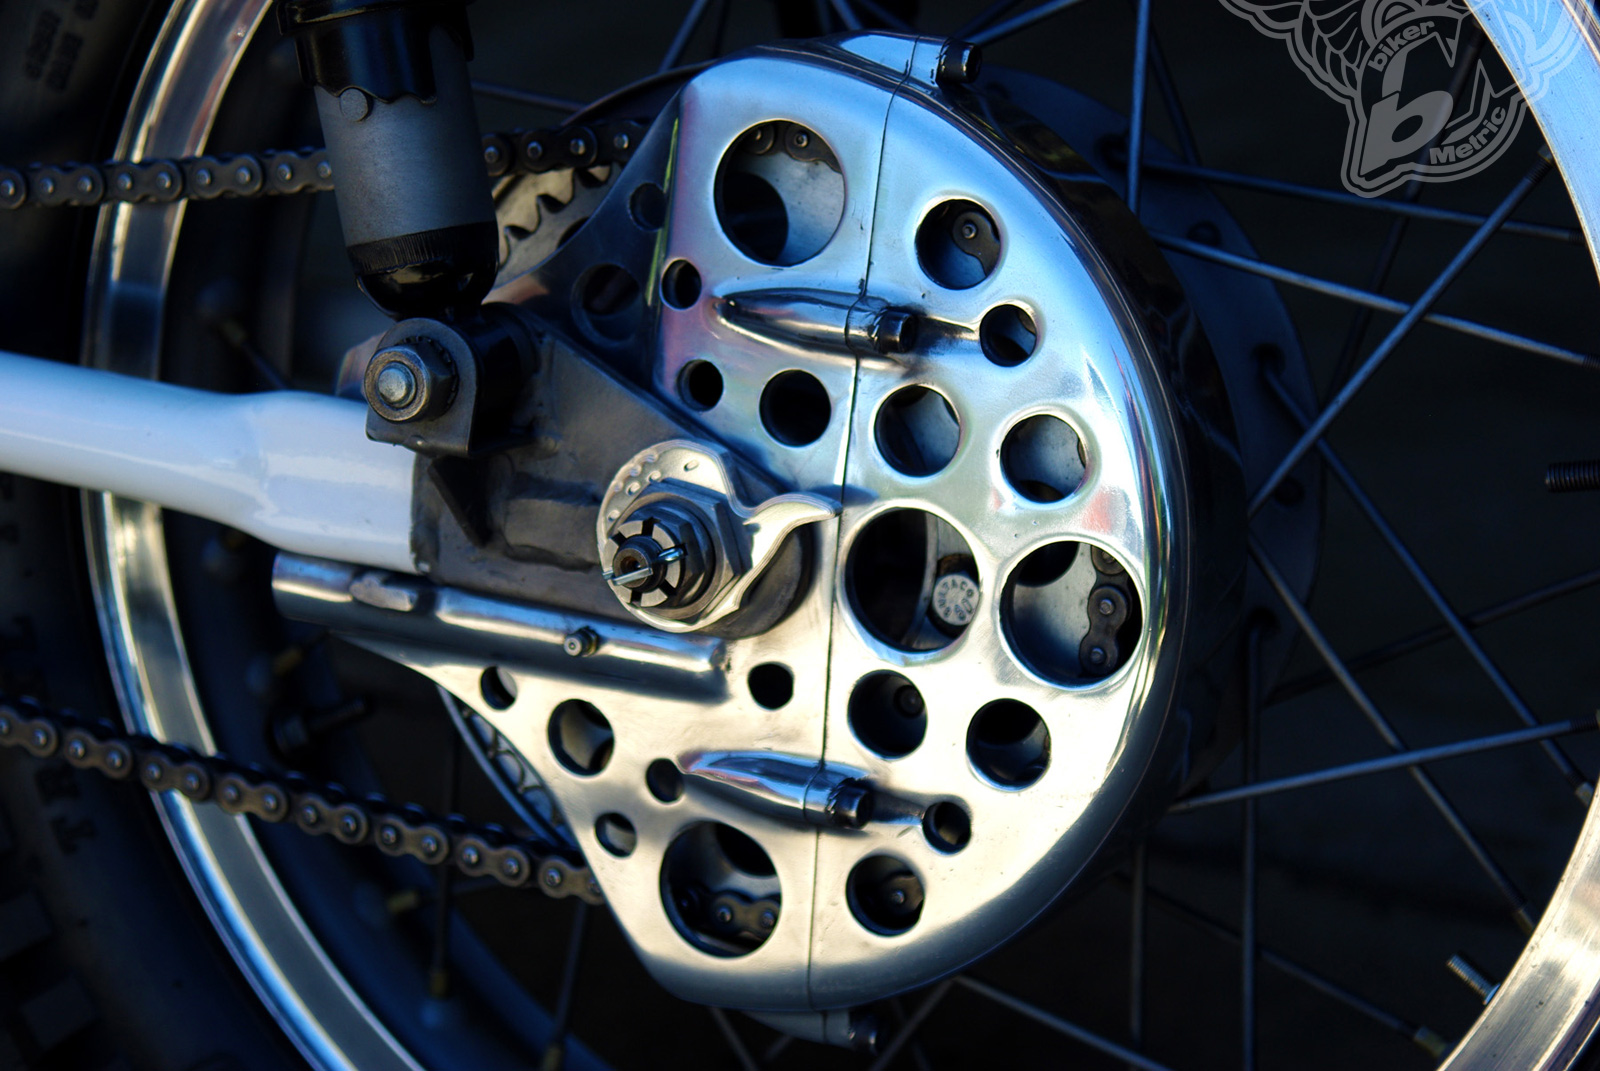 custom bultaco matador 250 drilled chain cover | busch & busch